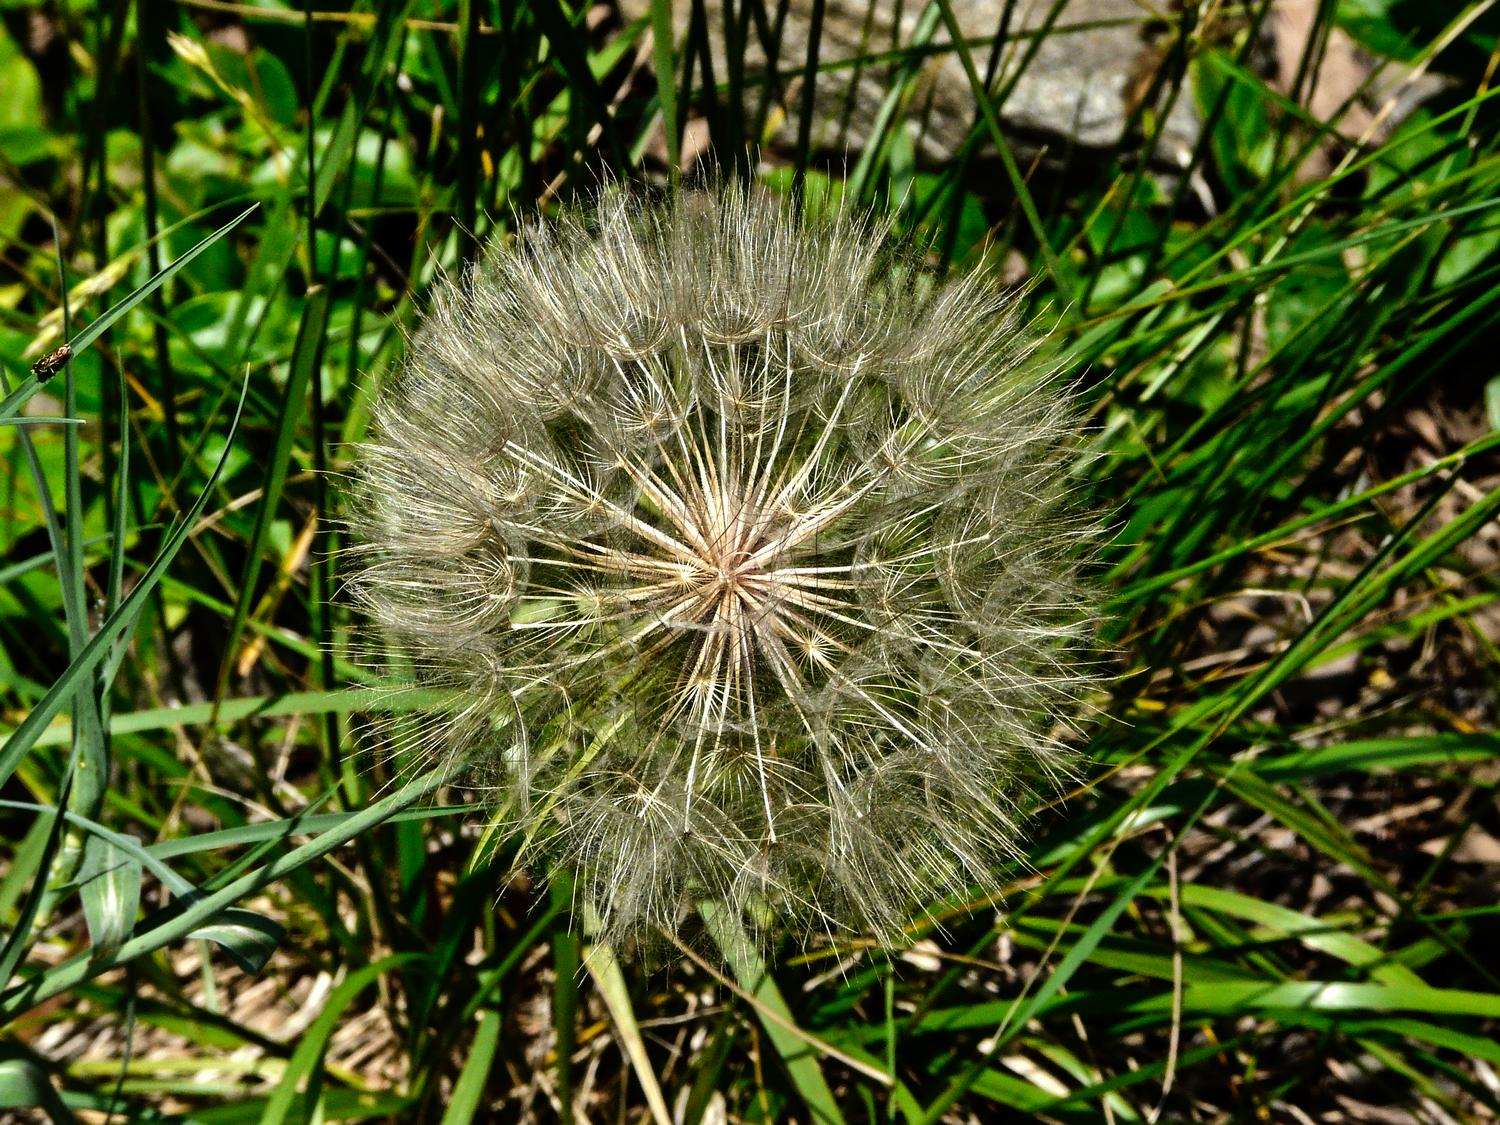 - We thought this was a giant, mutant dandelion puffball, but it's actually salsify, sometimes called  goatsbeard. - Panasonic DMC-FZ18 - Tony Karp, design, art, photography, techno-impressionist, techno-impressionism, aerial photography , drone , drones , dji , mavic pro , video , 3D printing - Books -